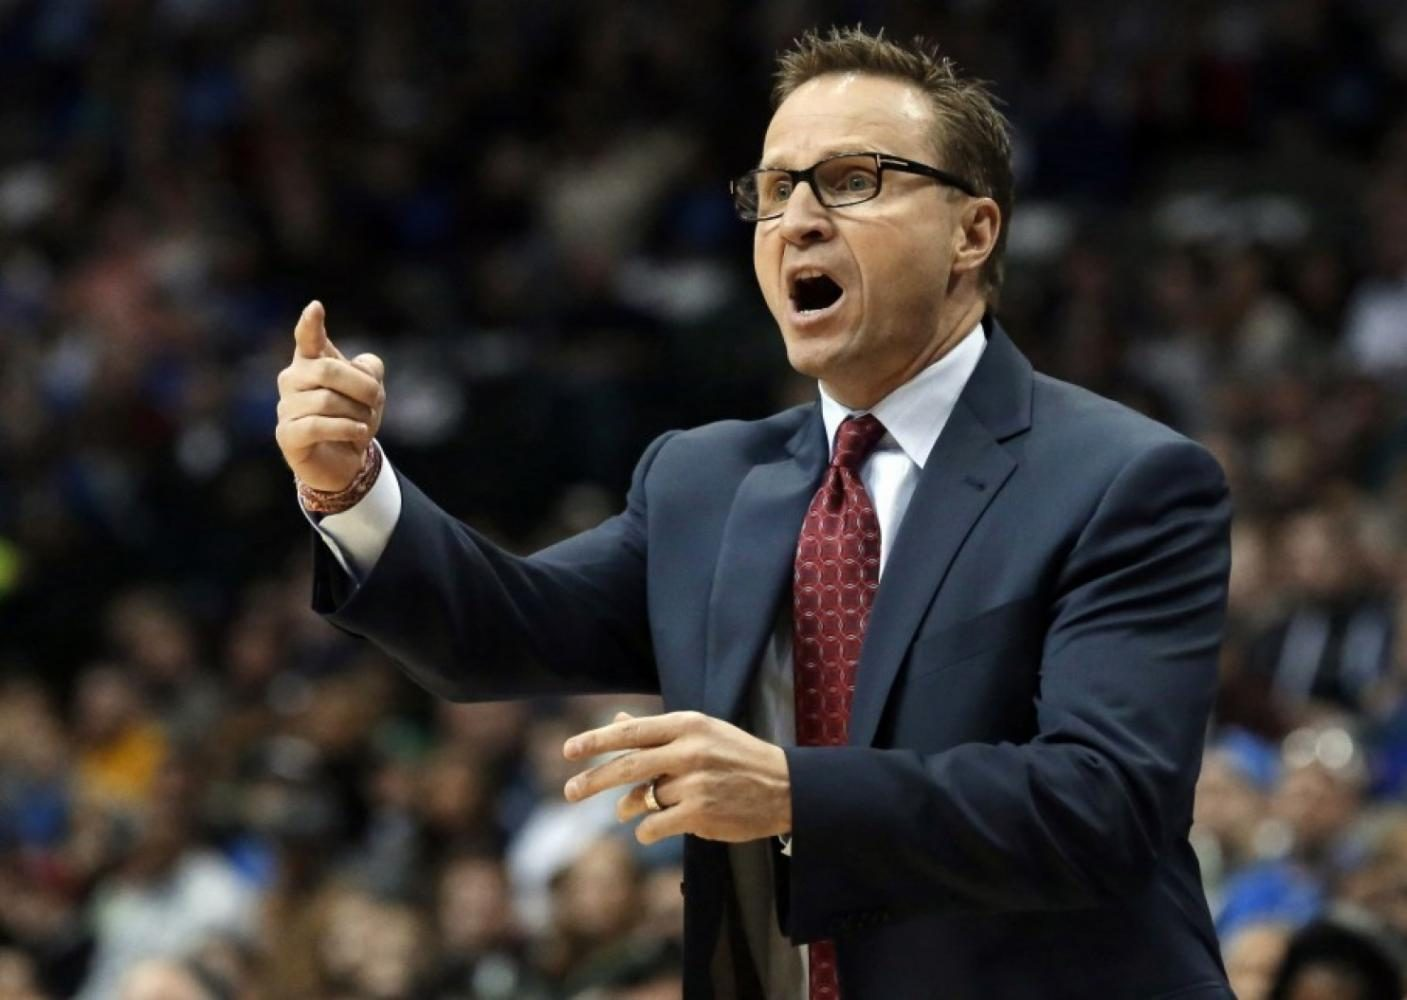 Wizards+Head+Coach+Brooks+recently+joined+the+Wizards+but+his+playoff+experience+didn%E2%80%99t+help+the+Wiz+against+the+Celtics.